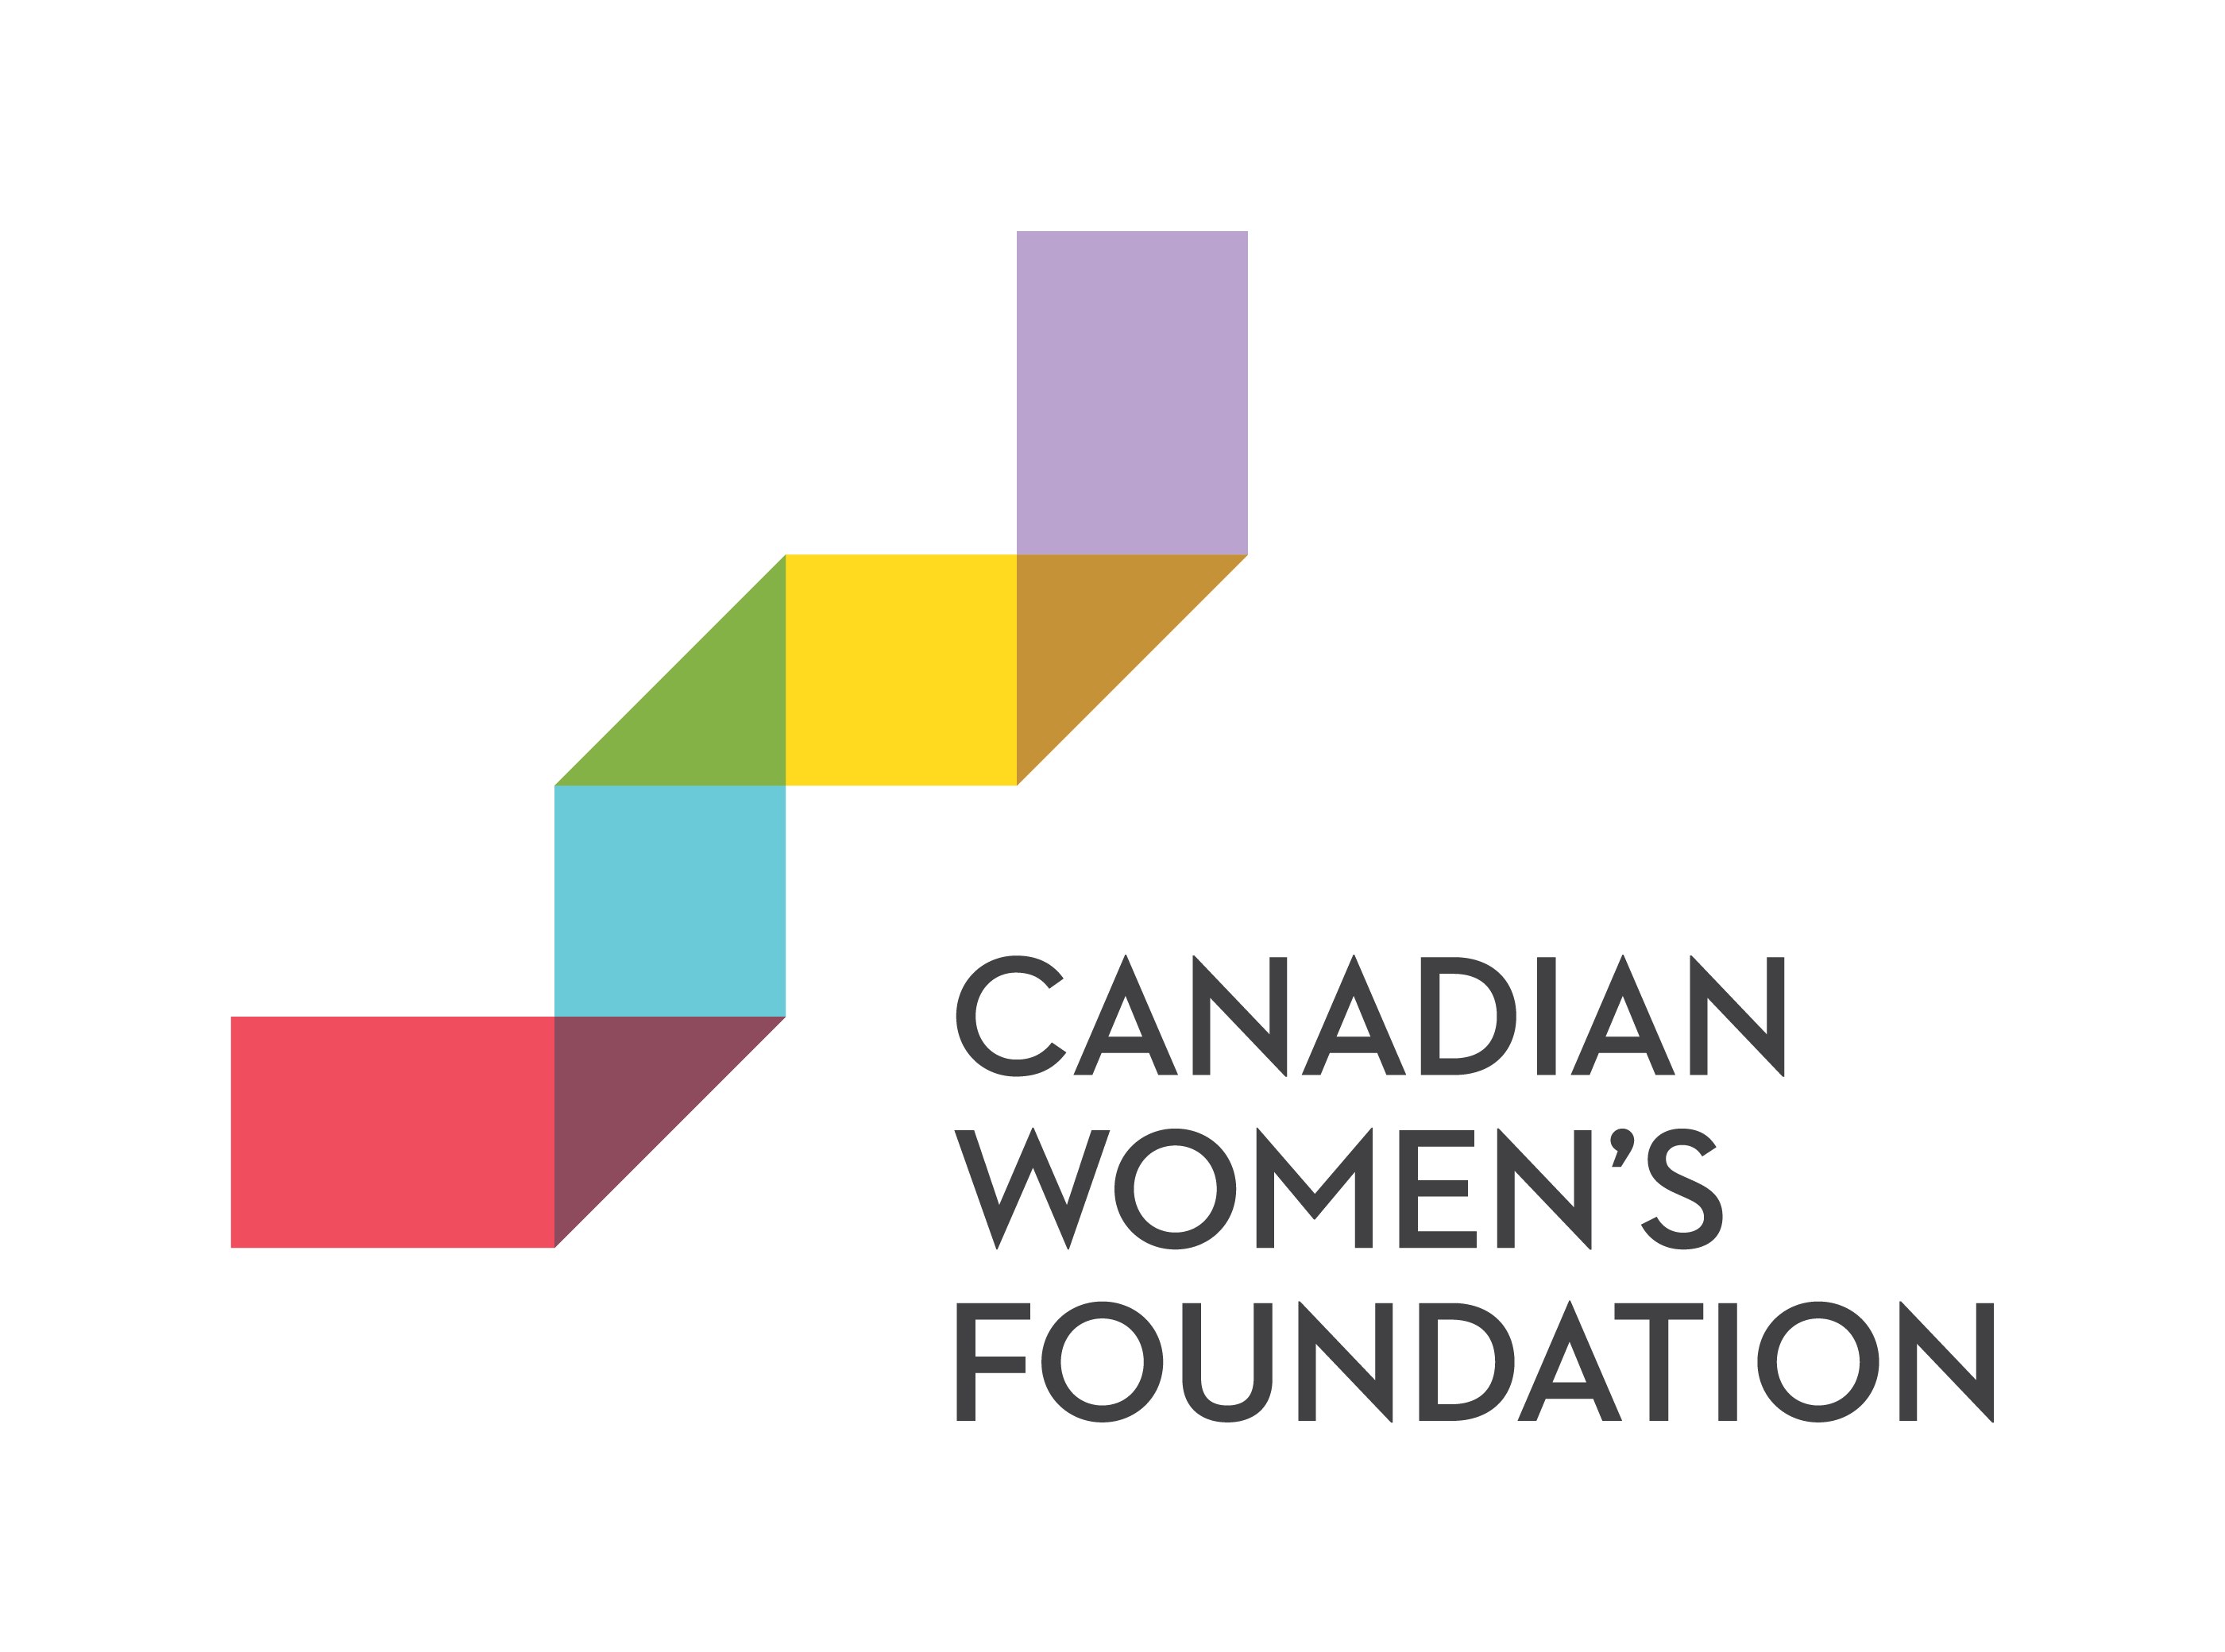 Women and Gender Equality Logo with Canada's Flag